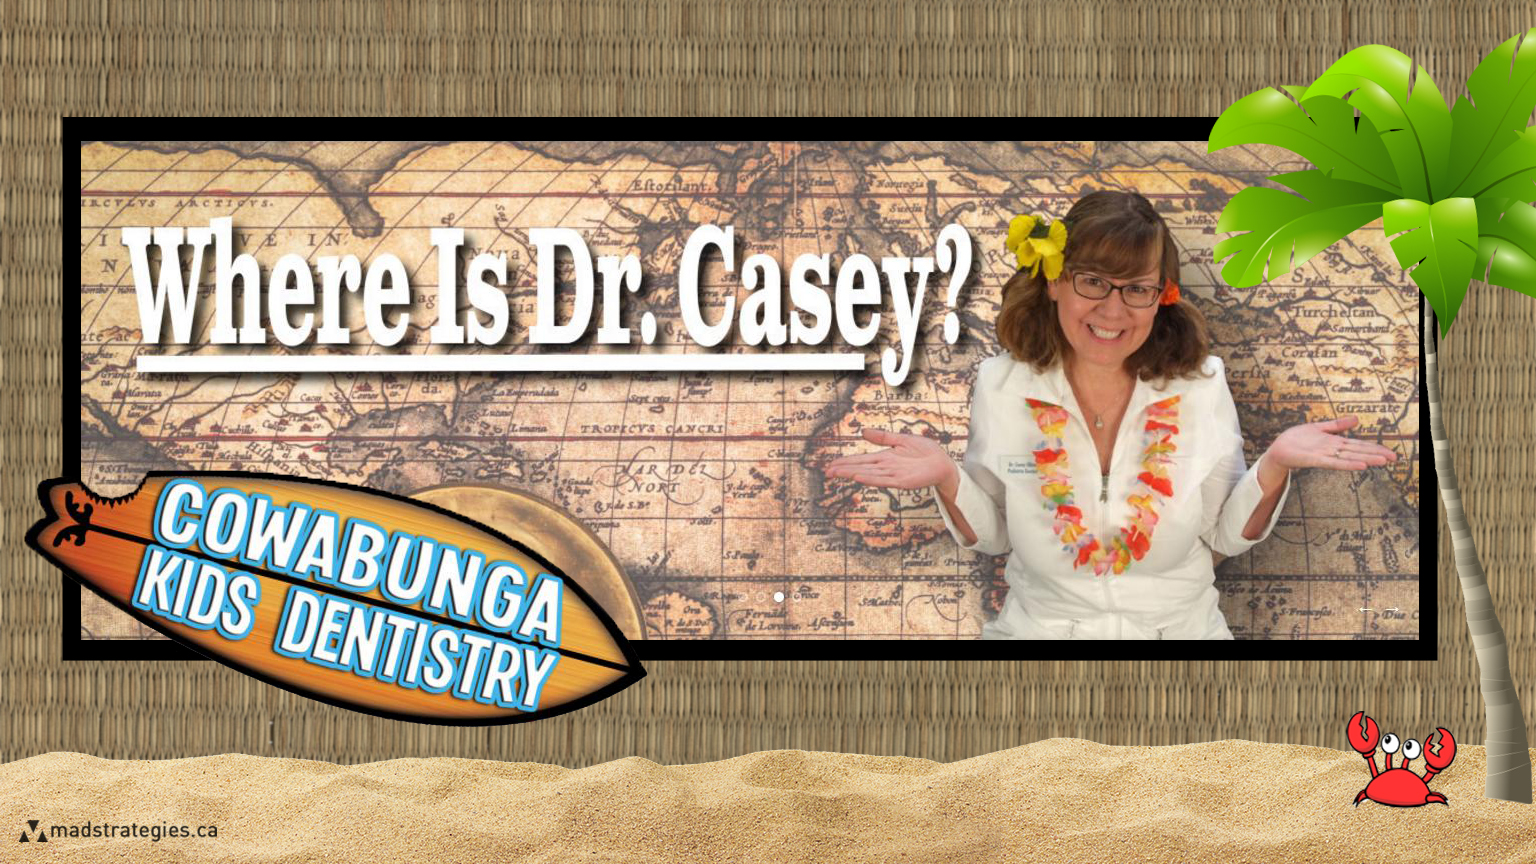 Where is Dr. Casey?